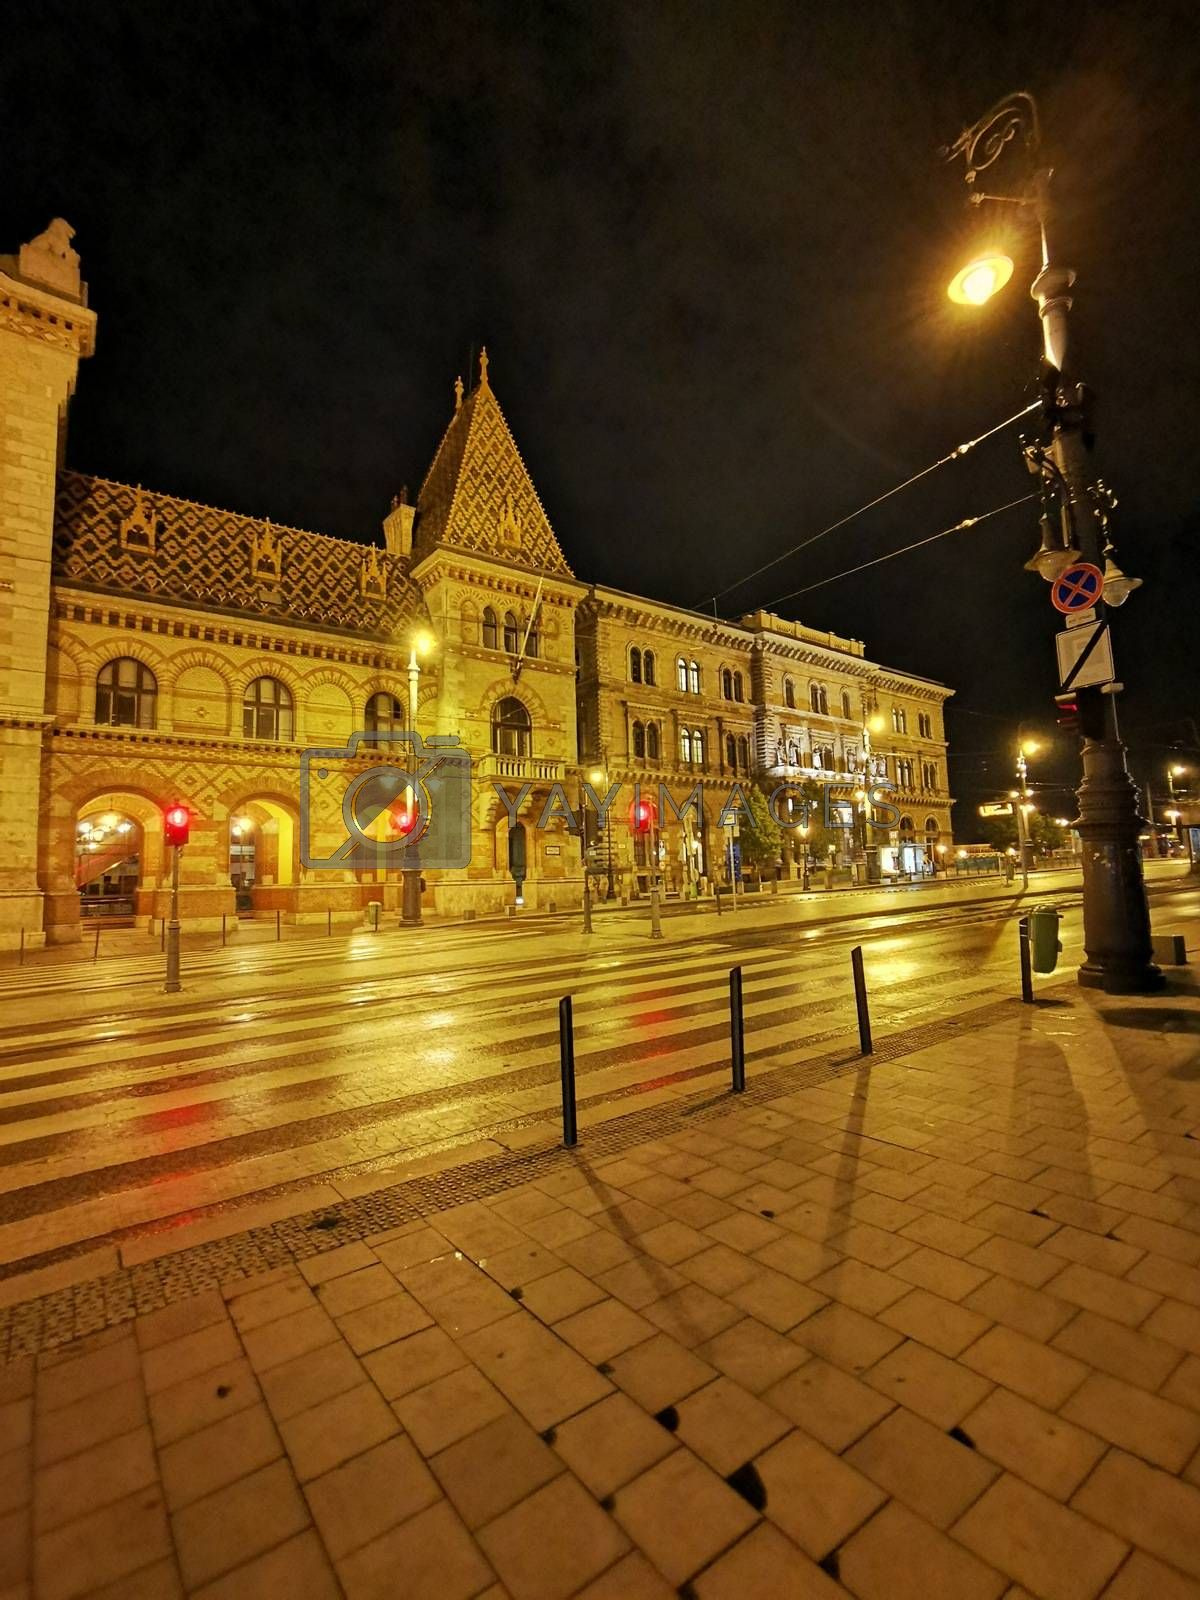 Royalty free image of Main customs square street view in Budapest in the evening lights by balage941